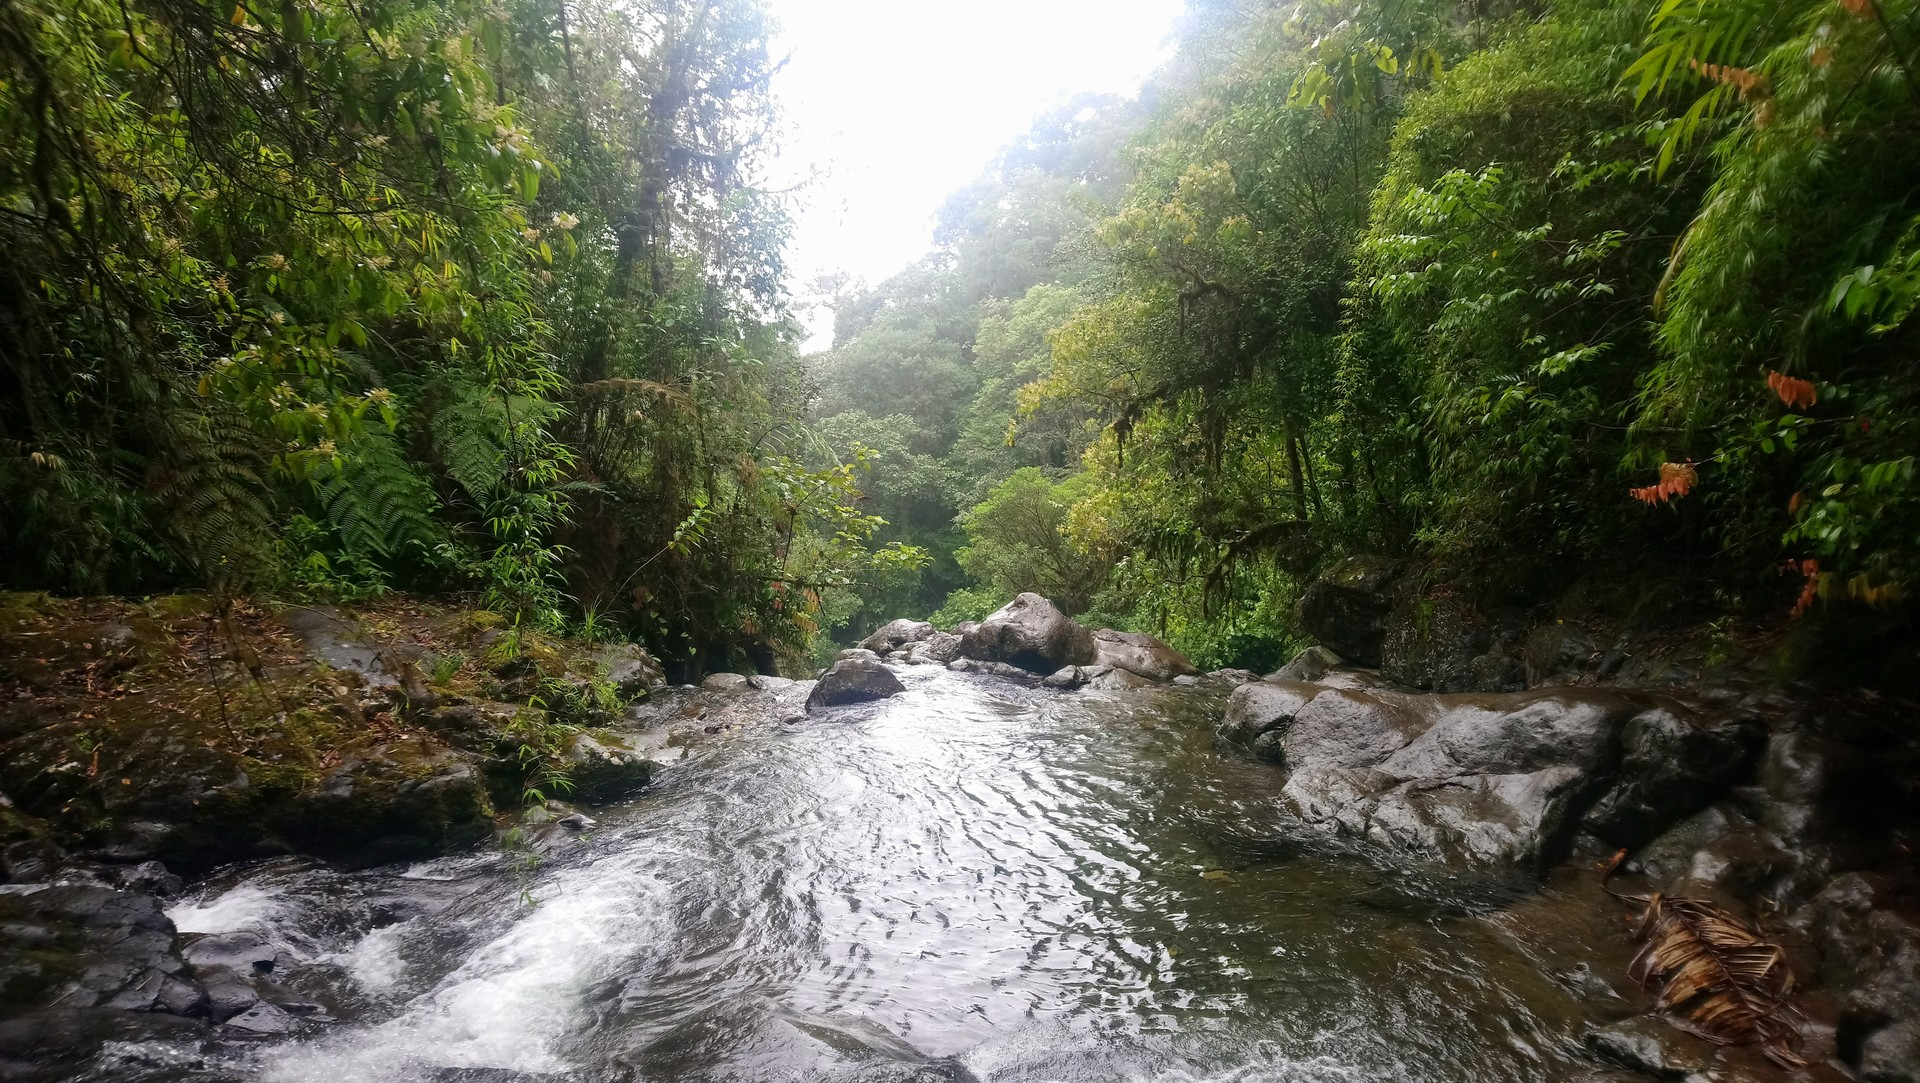 In The Cloud Garden, Tom Hart Dyke makes his way into the impenetrable Darien Gap in search of rare orchids